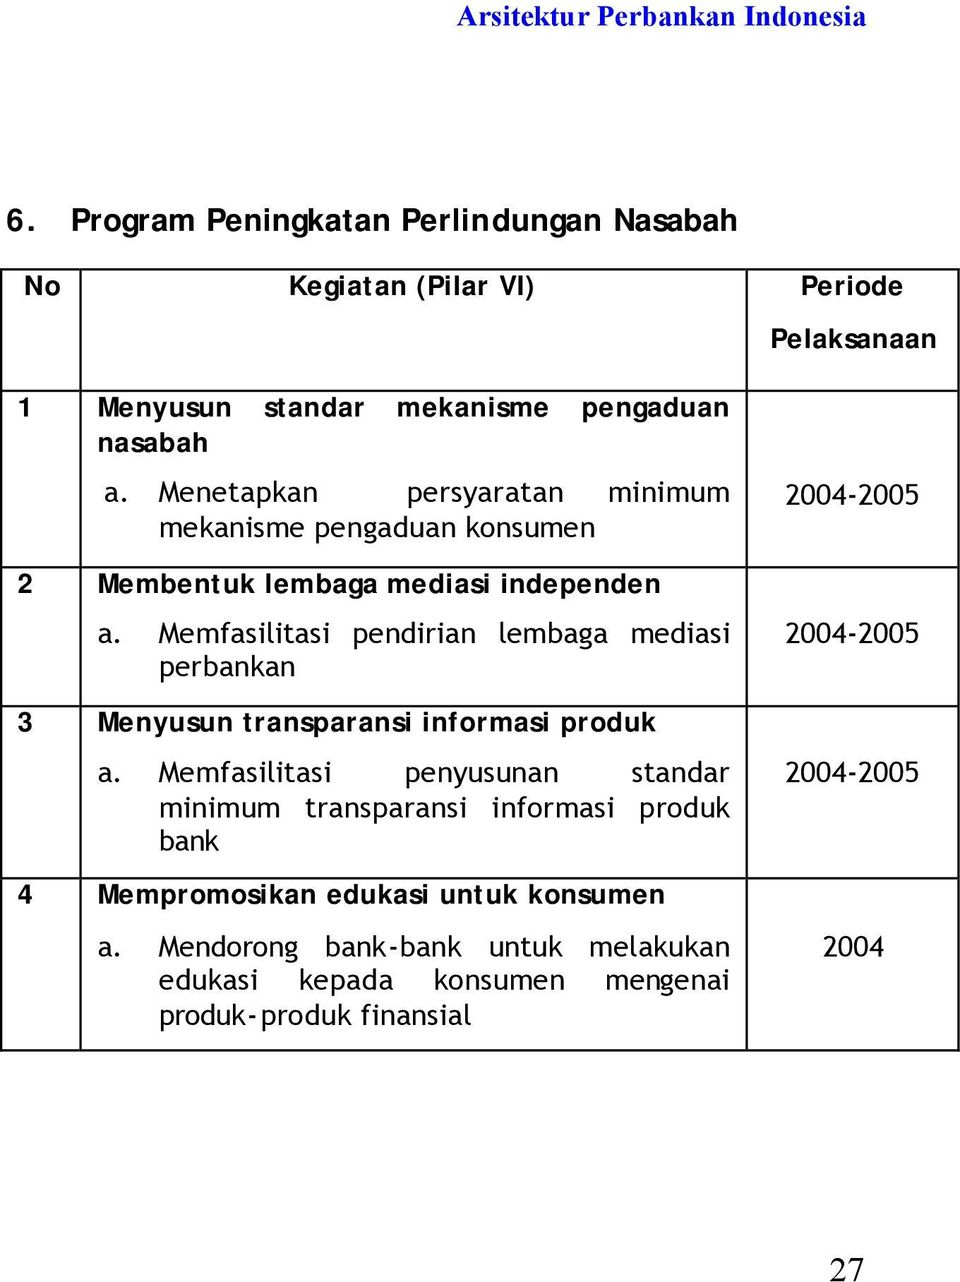 Program Implementasi Api Dilaksanakan Secara Bertahap Pdf Download Gratis